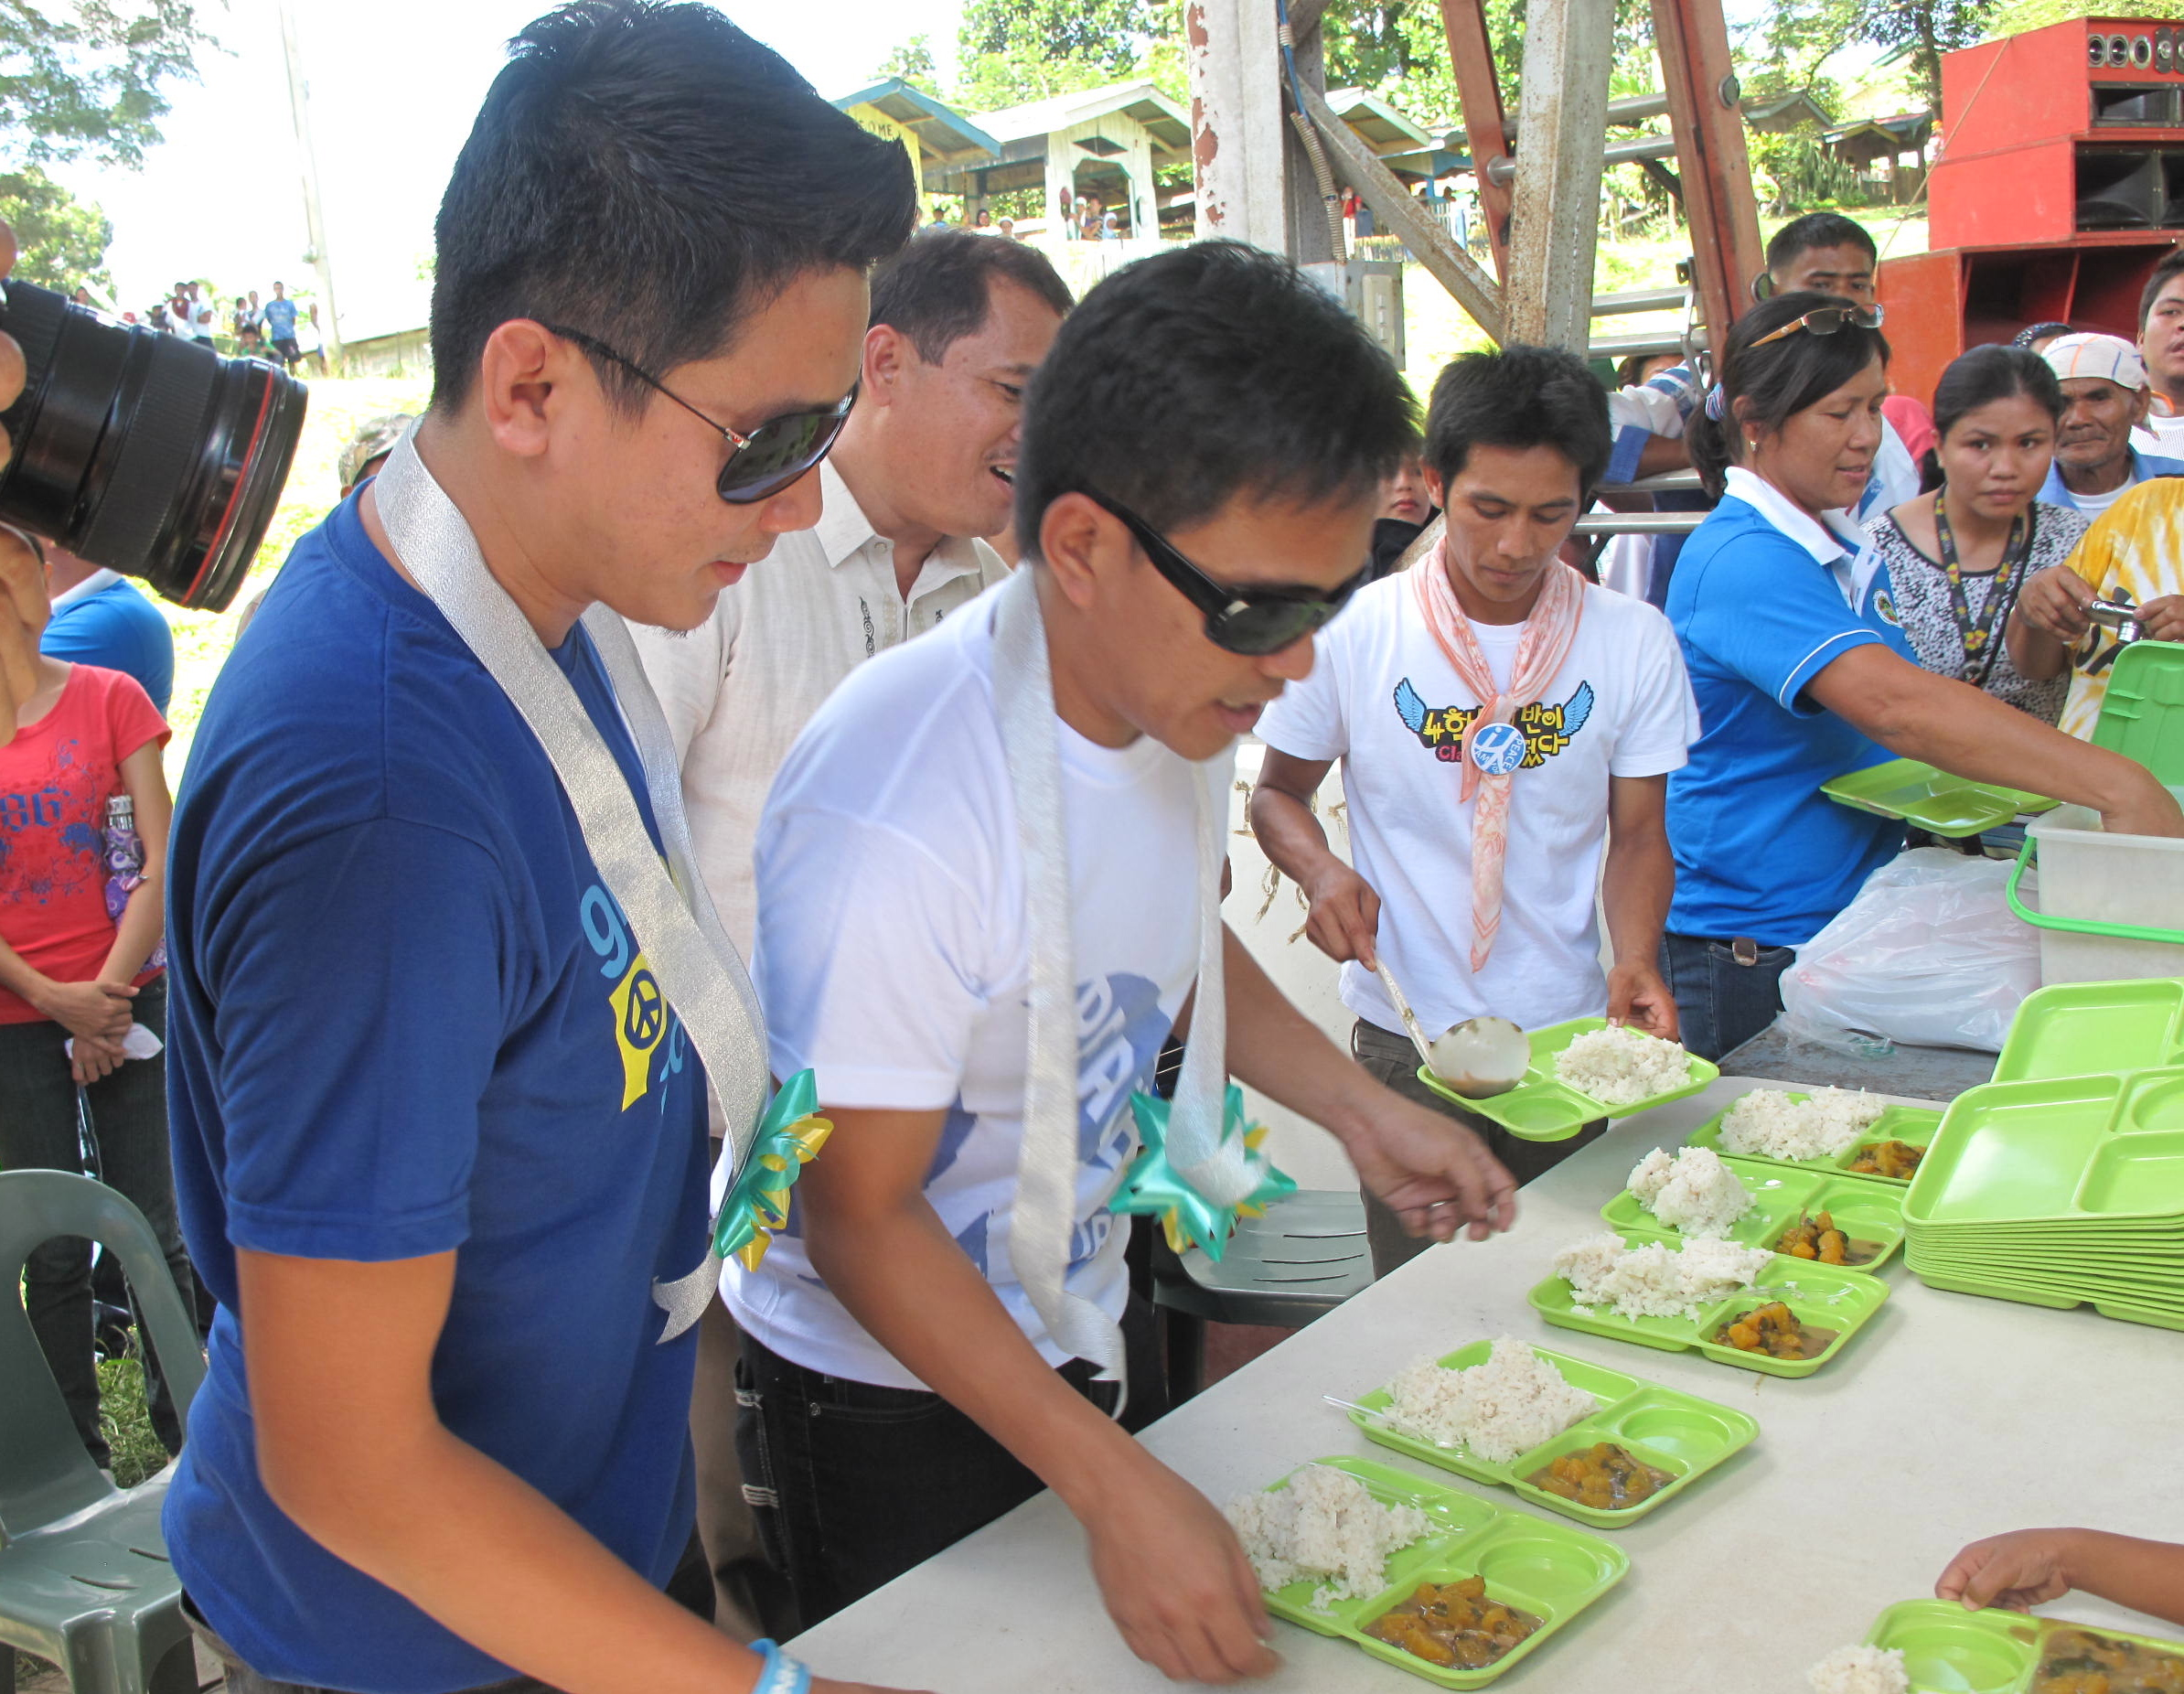 HELPING HANDS. Musicians Ebe Dancel and Datu Khomeni take part in a feeding program in Aleosan, North Cotabato. Photo by Angela Casauay.